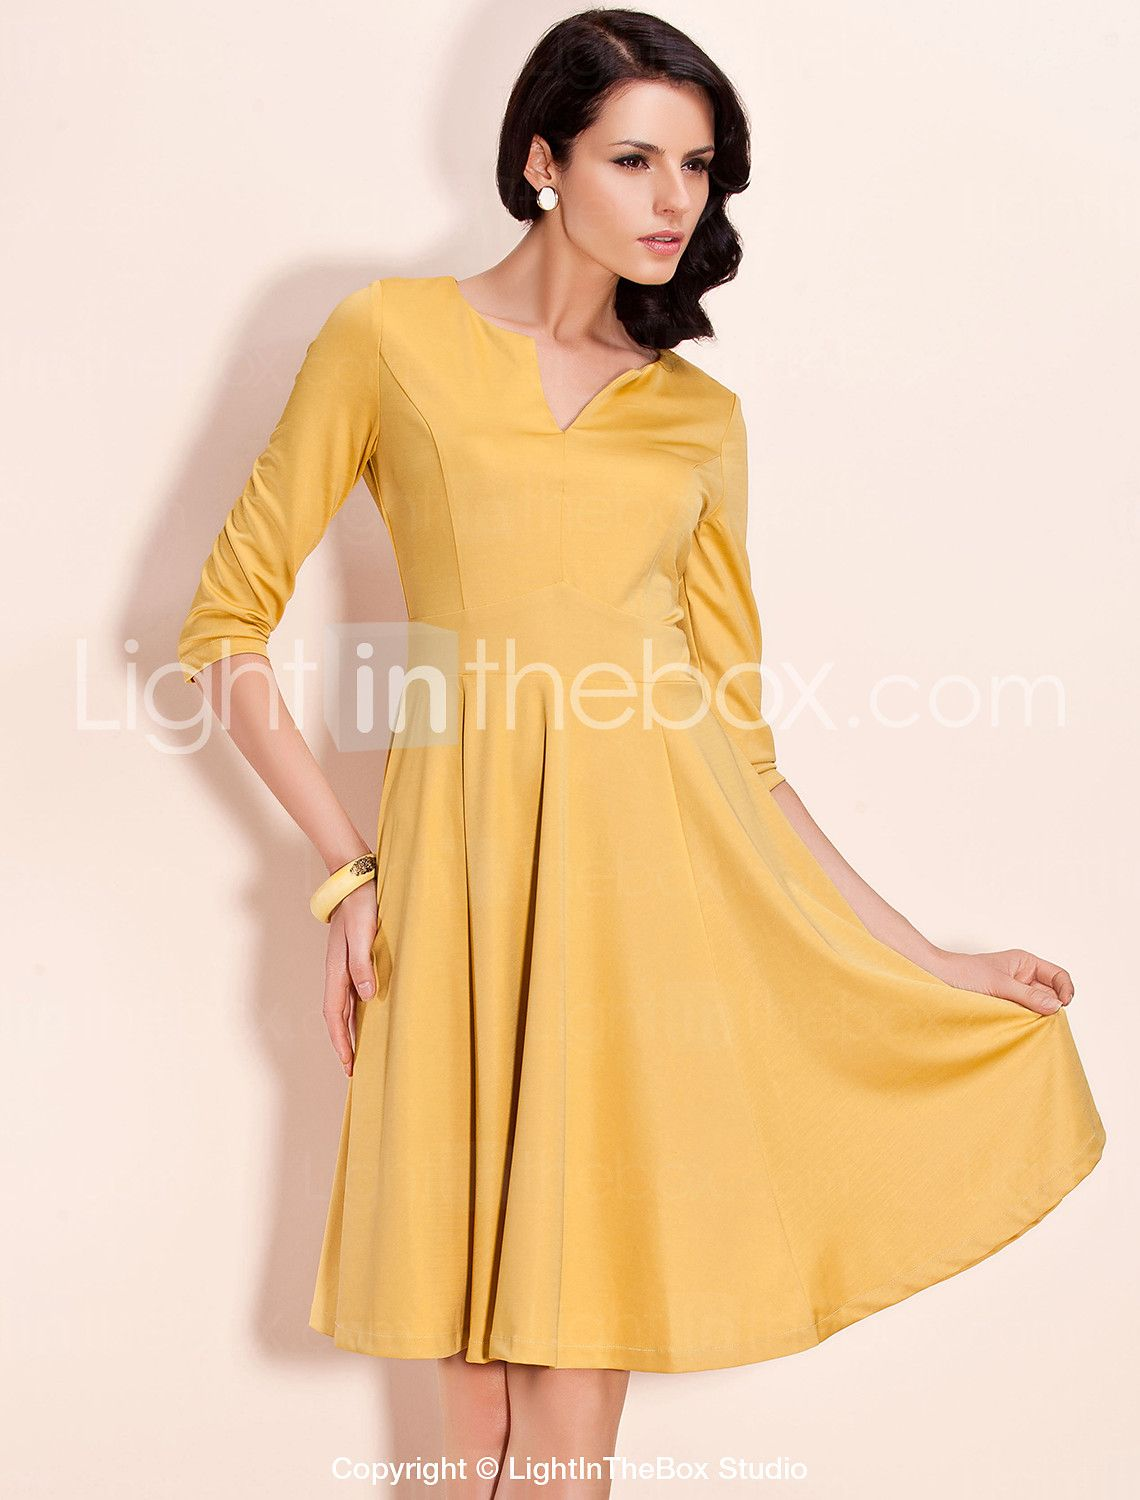 TS Mid Sleeve Swing Jersey Dress (More Colors) - USD $ 39.99